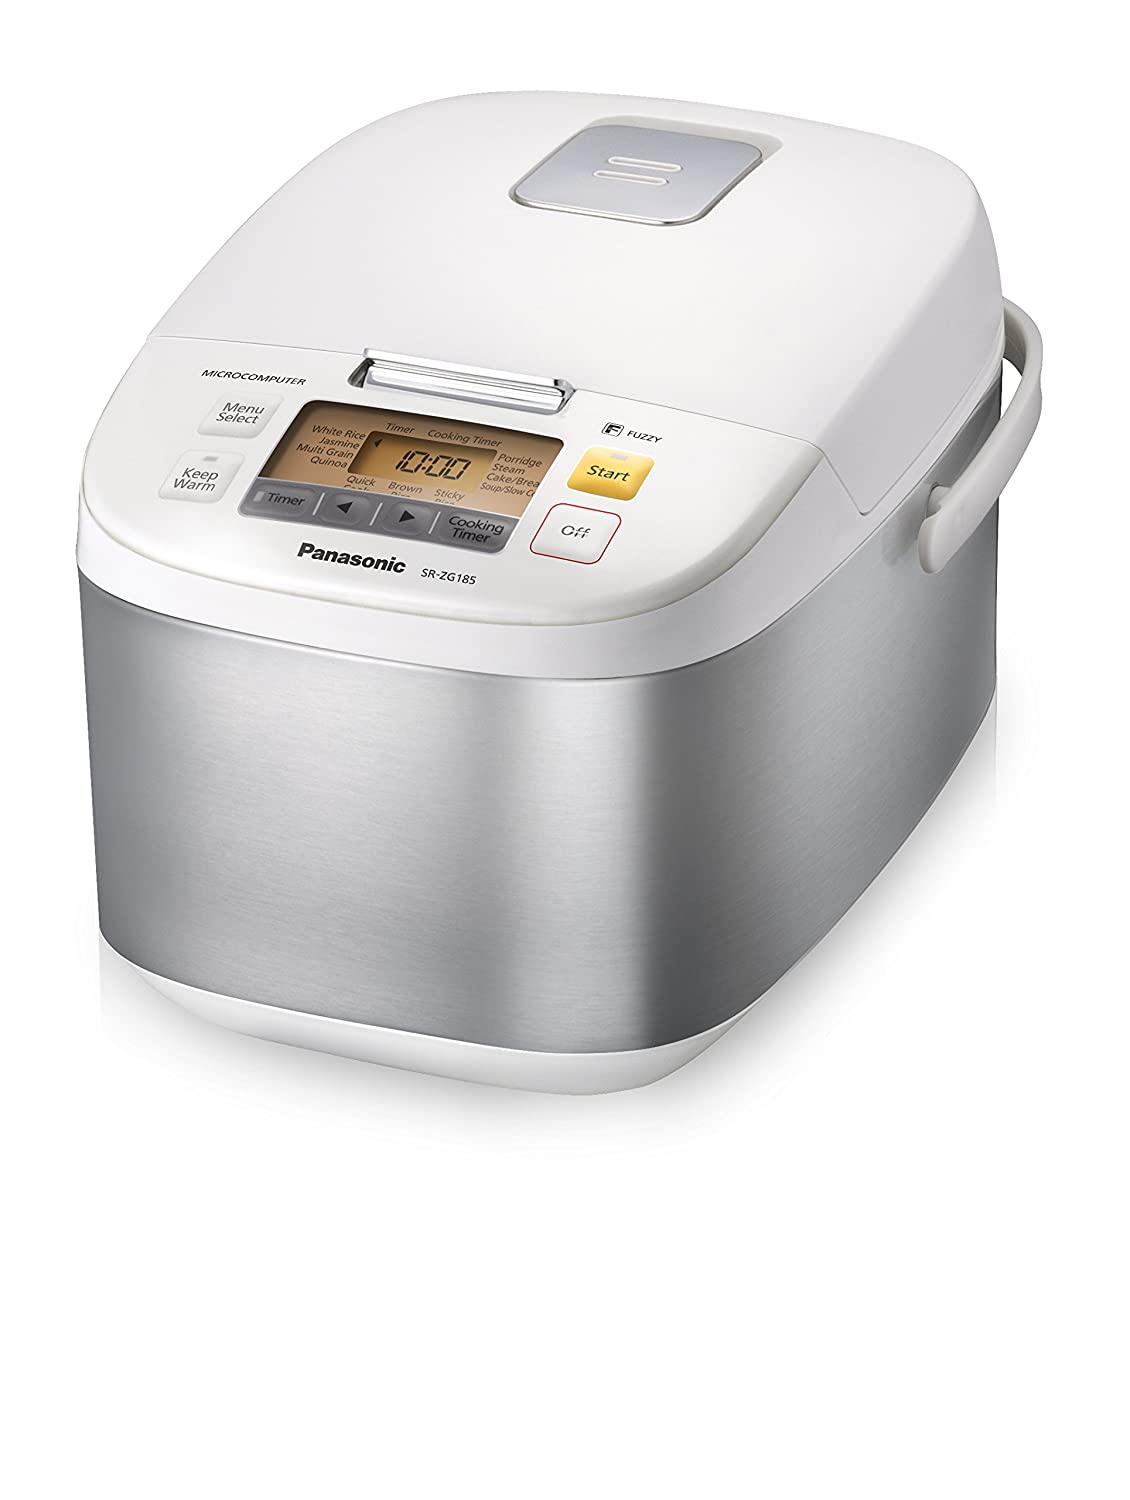 Panasonic 5-Cup (Uncooked) Microcomputer Controlled Rice Cooker & Multi-Cooker, Stainless Steel/White SR-ZG105